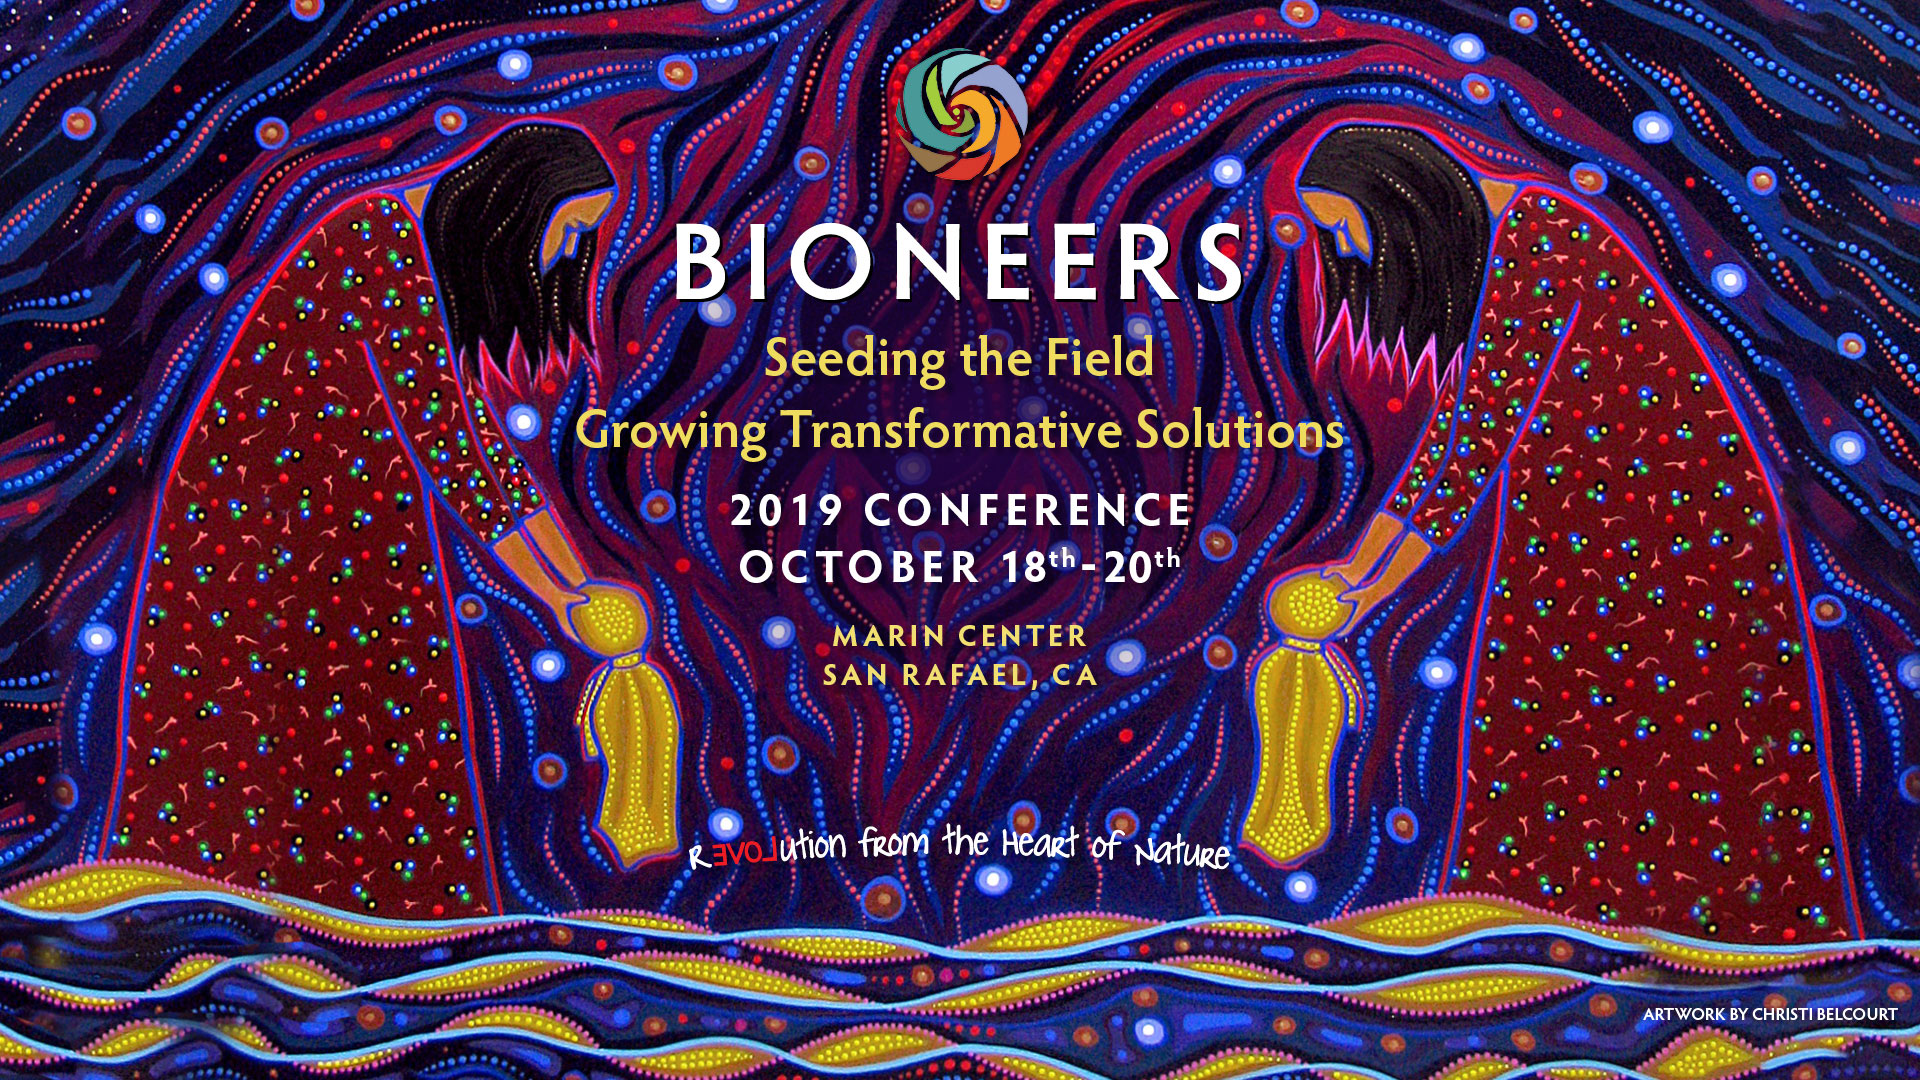 Bioneers 2019: Seeding the Field, Growing Transformative Solutions